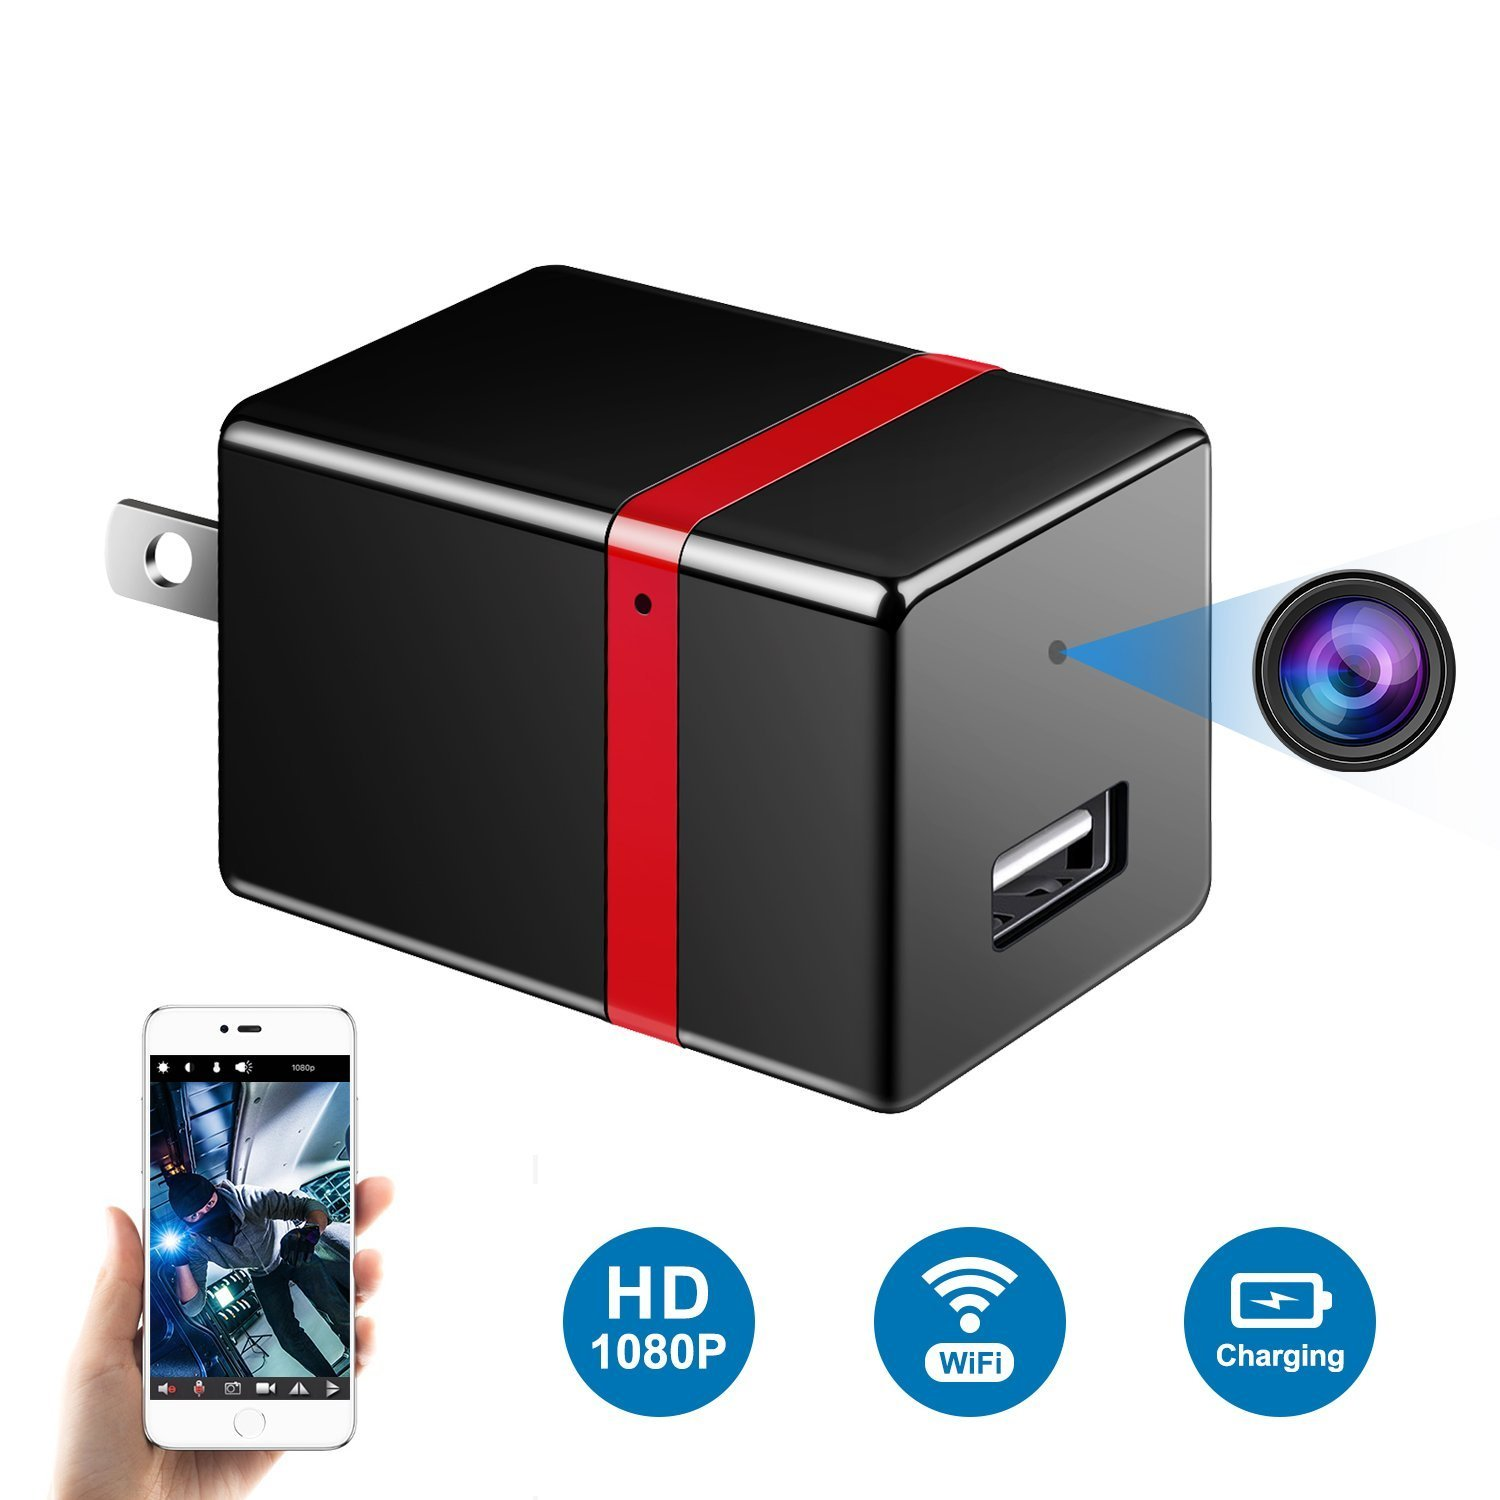 Facamword Hidden Camera - 1080P WiFi Spy Camera - Wireless USB Adapter Cameras - HD Wall Charger Nanny Cam - Motion Detection Alarm - Video Recorder - Remote View - Home Security